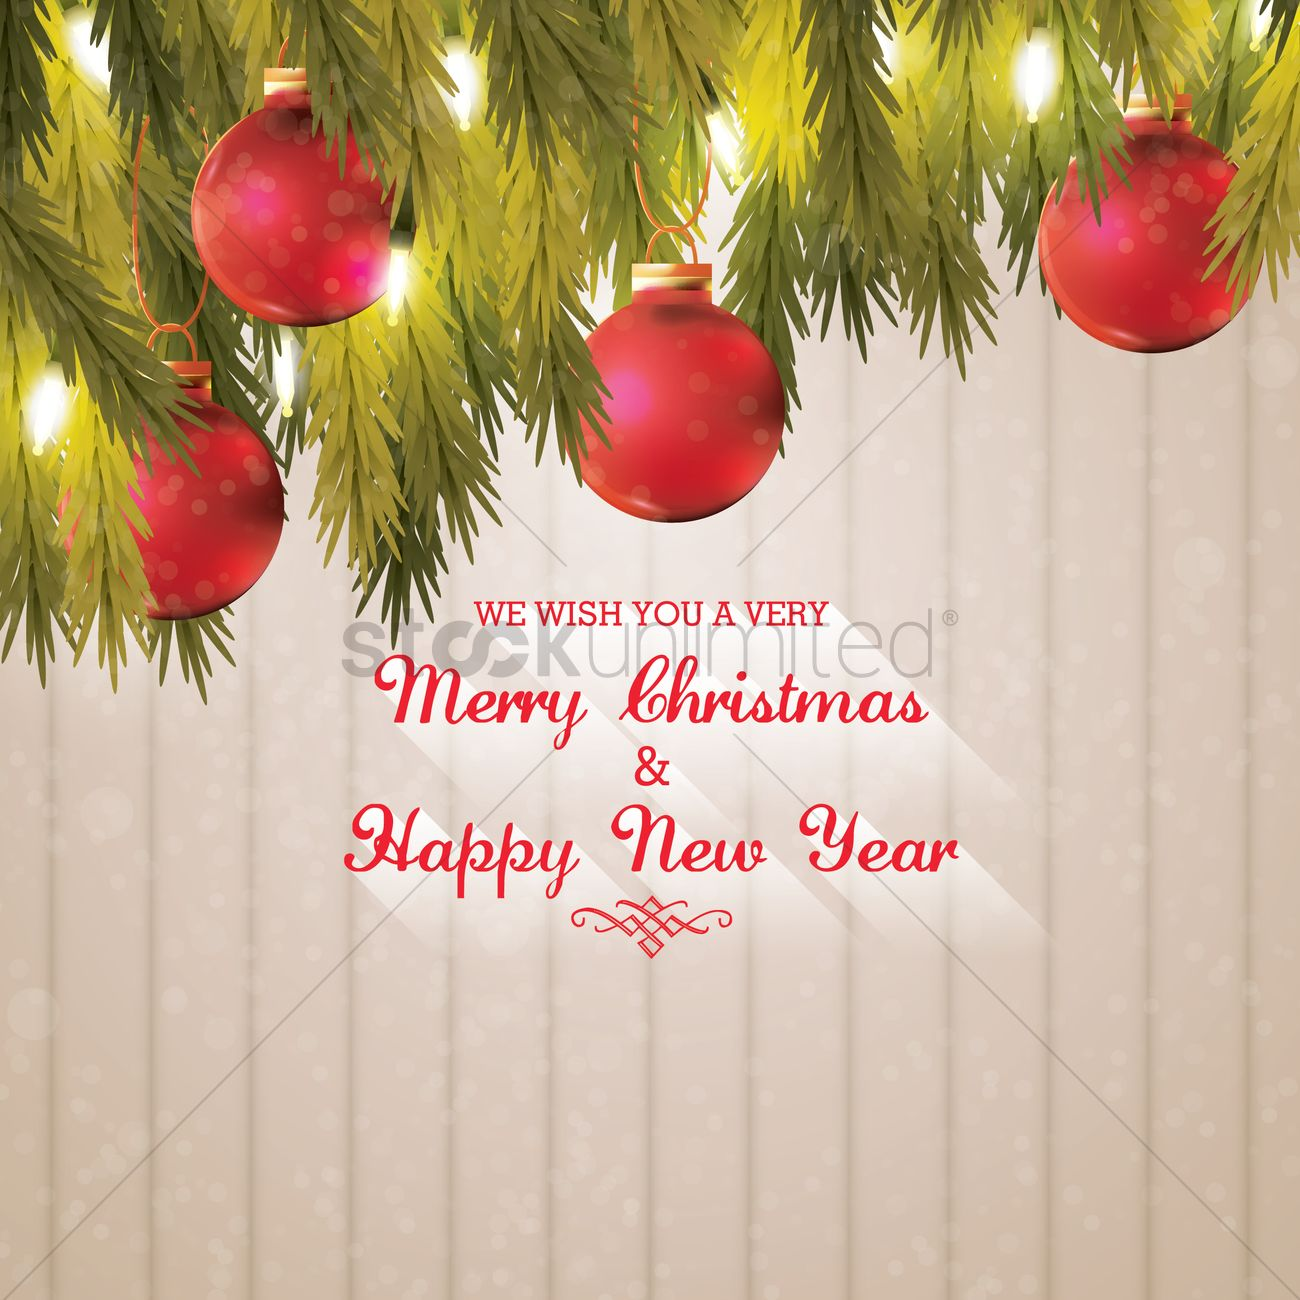 Christmas and new year greetings vector image 1626367 stockunlimited christmas and new year greetings vector graphic kristyandbryce Images